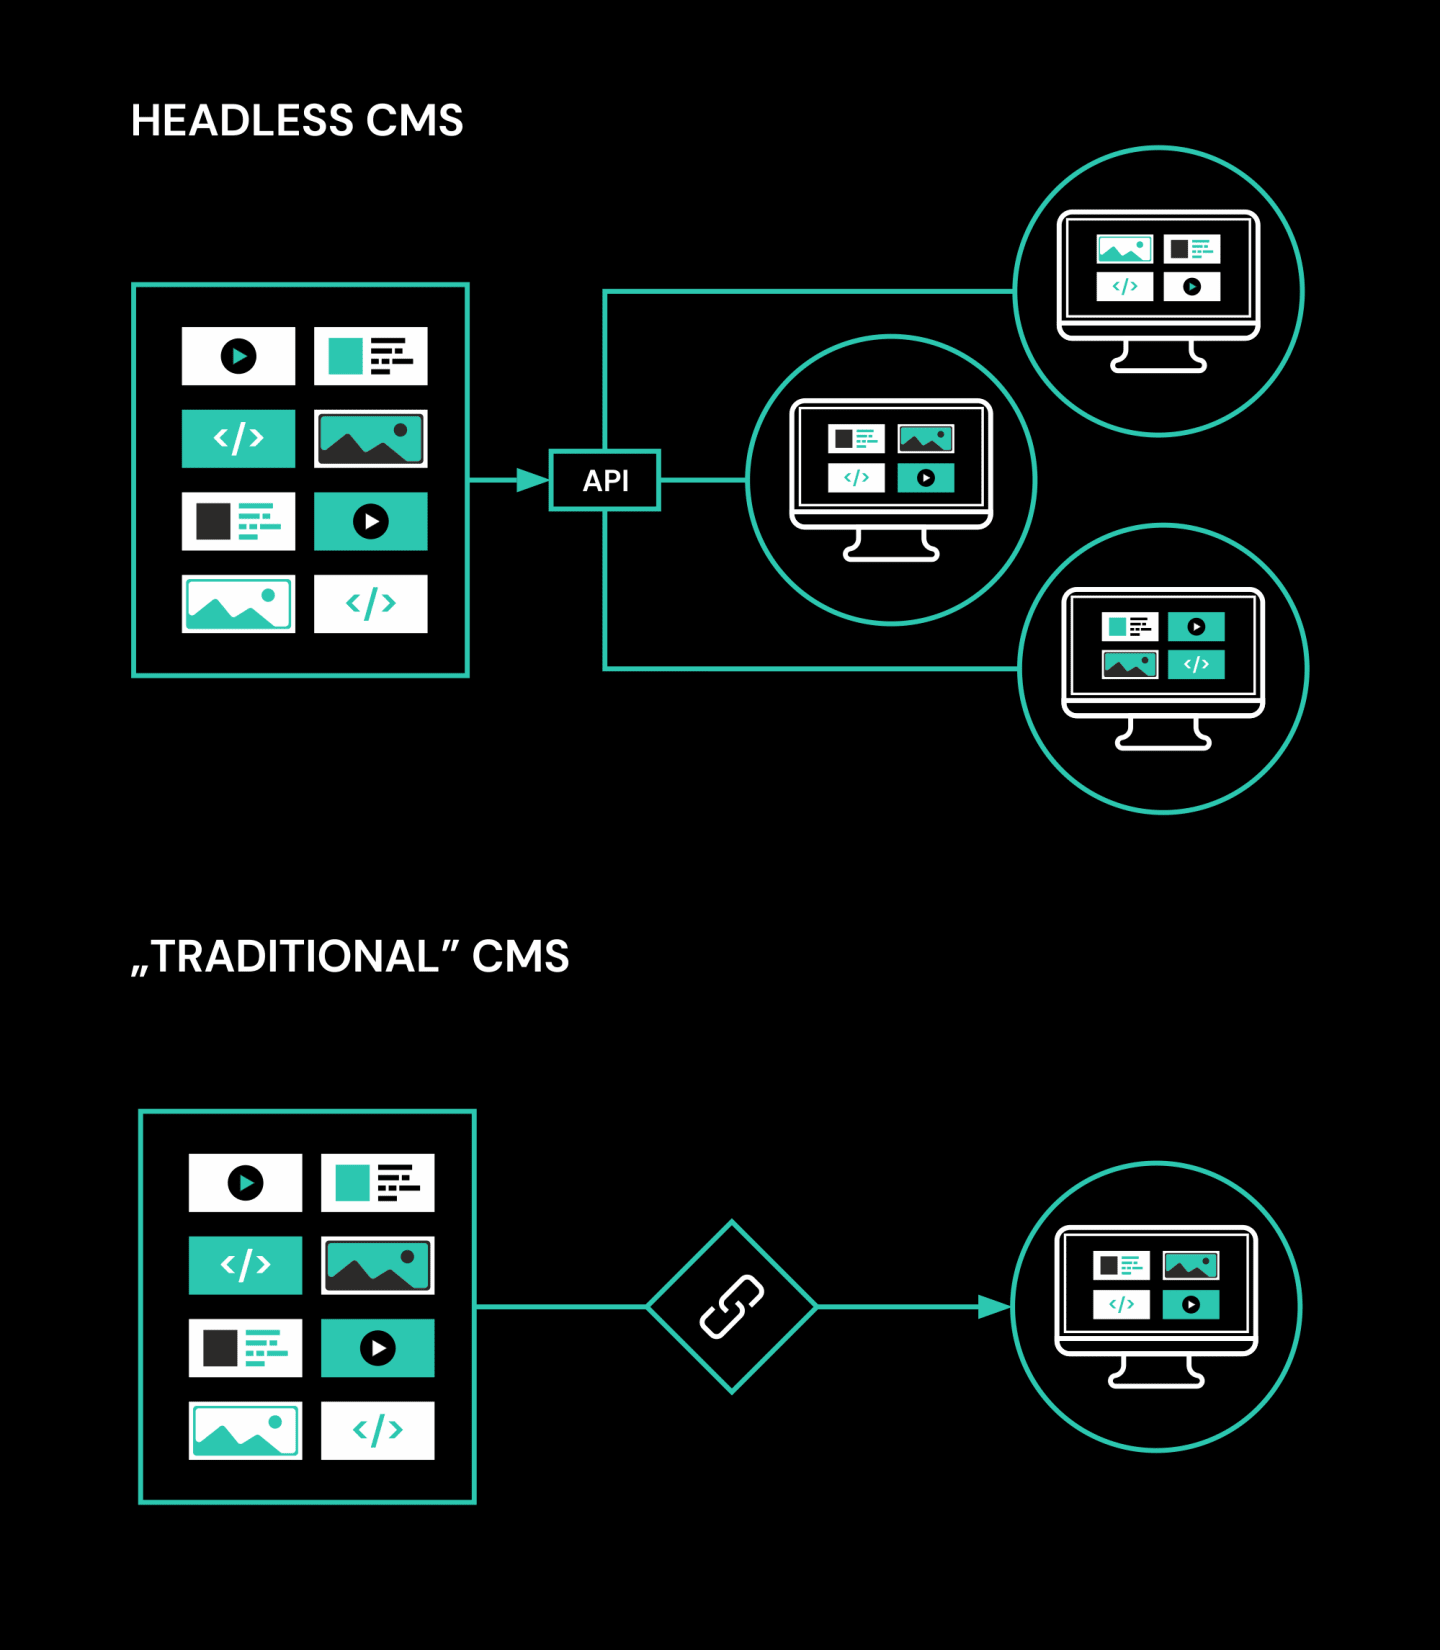 A visual representation illustrating the difference between a headless and traditional CMS. It indicates that a headless CMS provides the opportunity for a variety of front end solutions, which a traditional CMS can limit you to one.